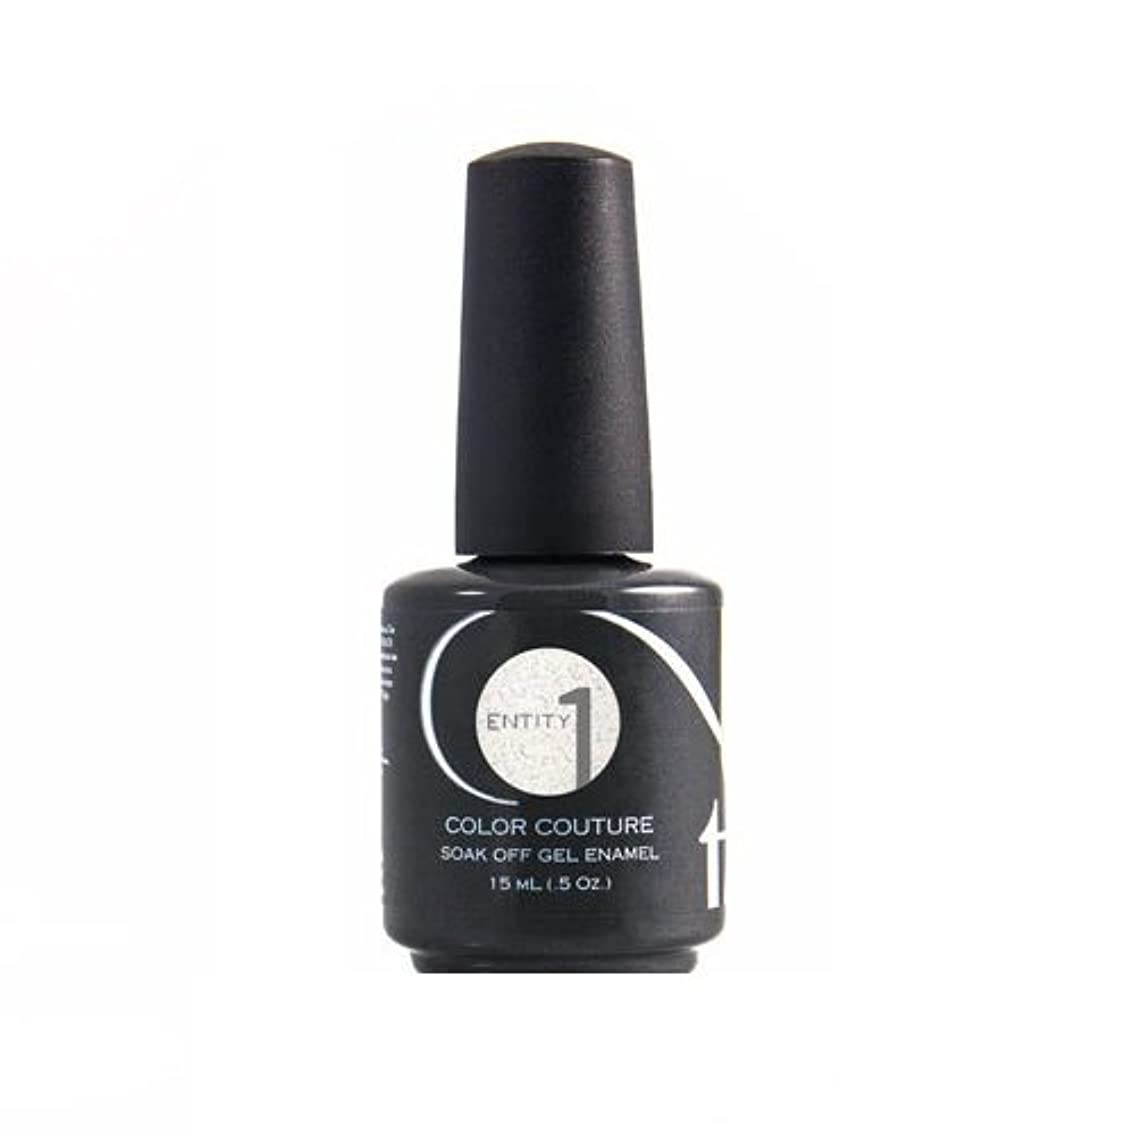 頑張る市の中心部理論的Entity One Color Couture Gel Polish - Graphic & Girlish White - 0.5oz / 15ml